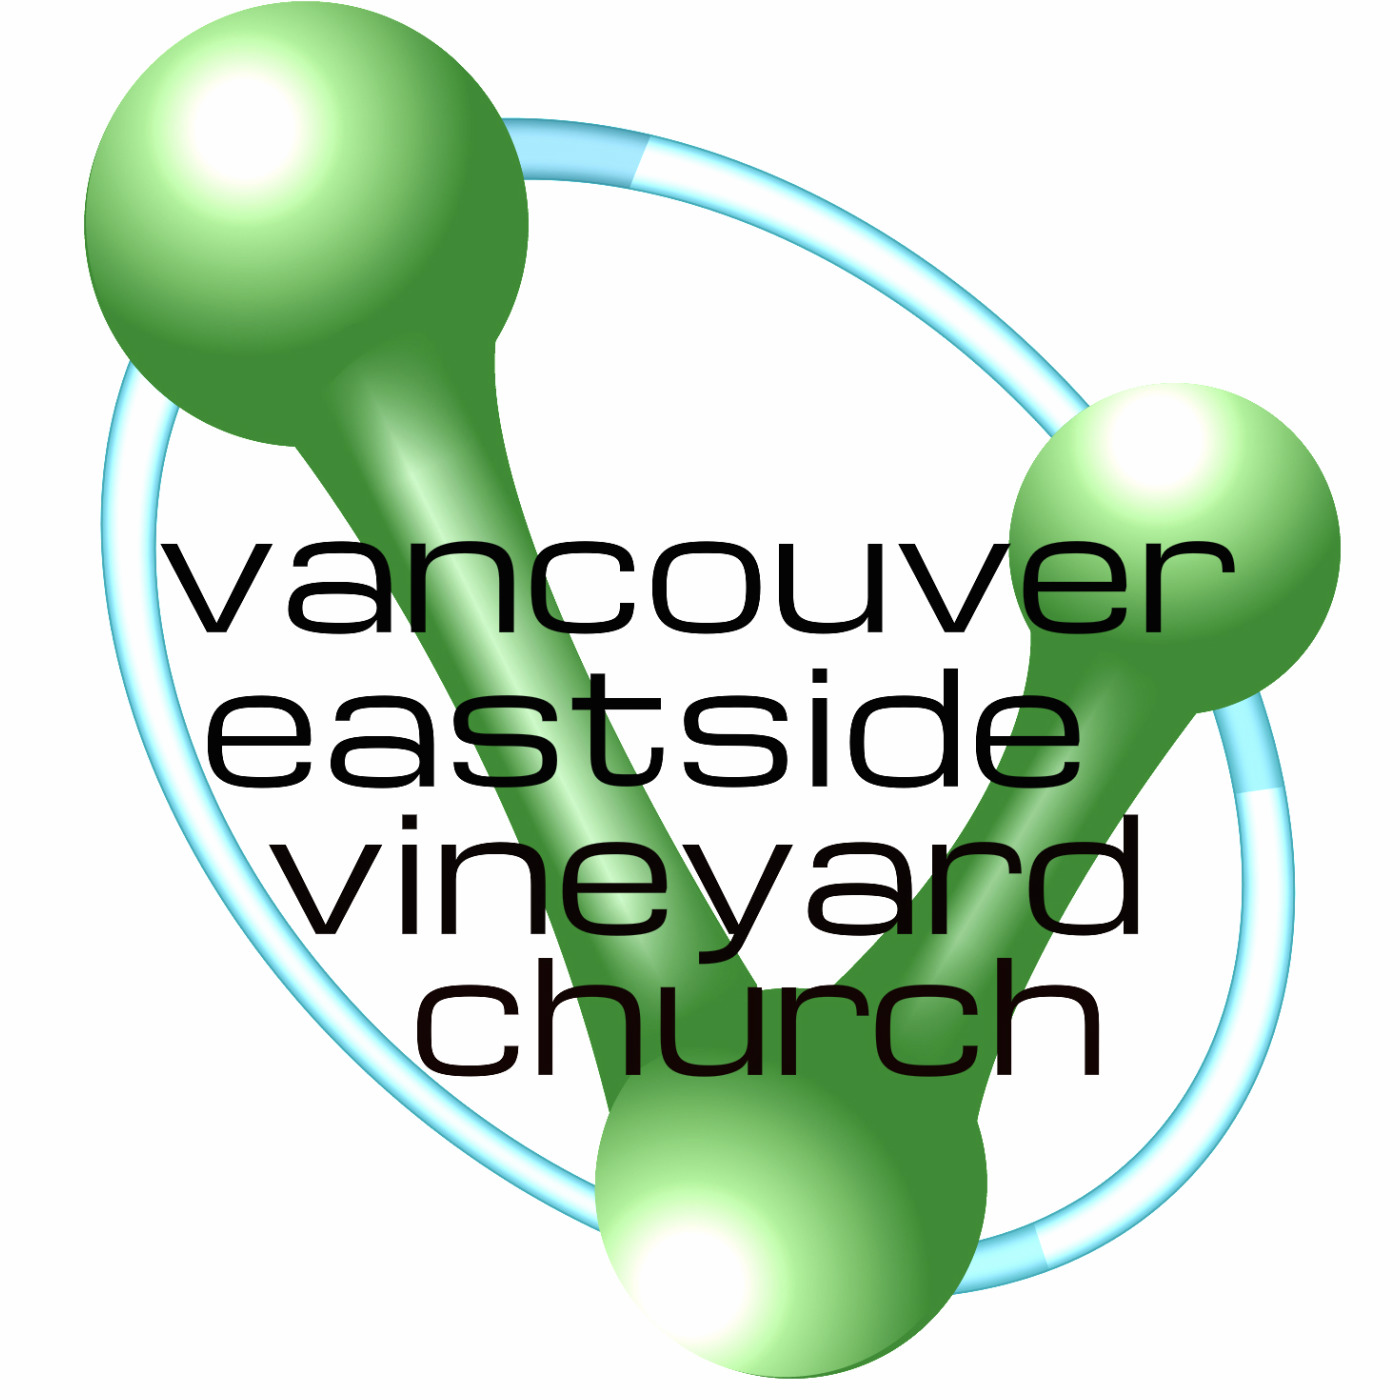 Vancouver Eastside Vineyard Church